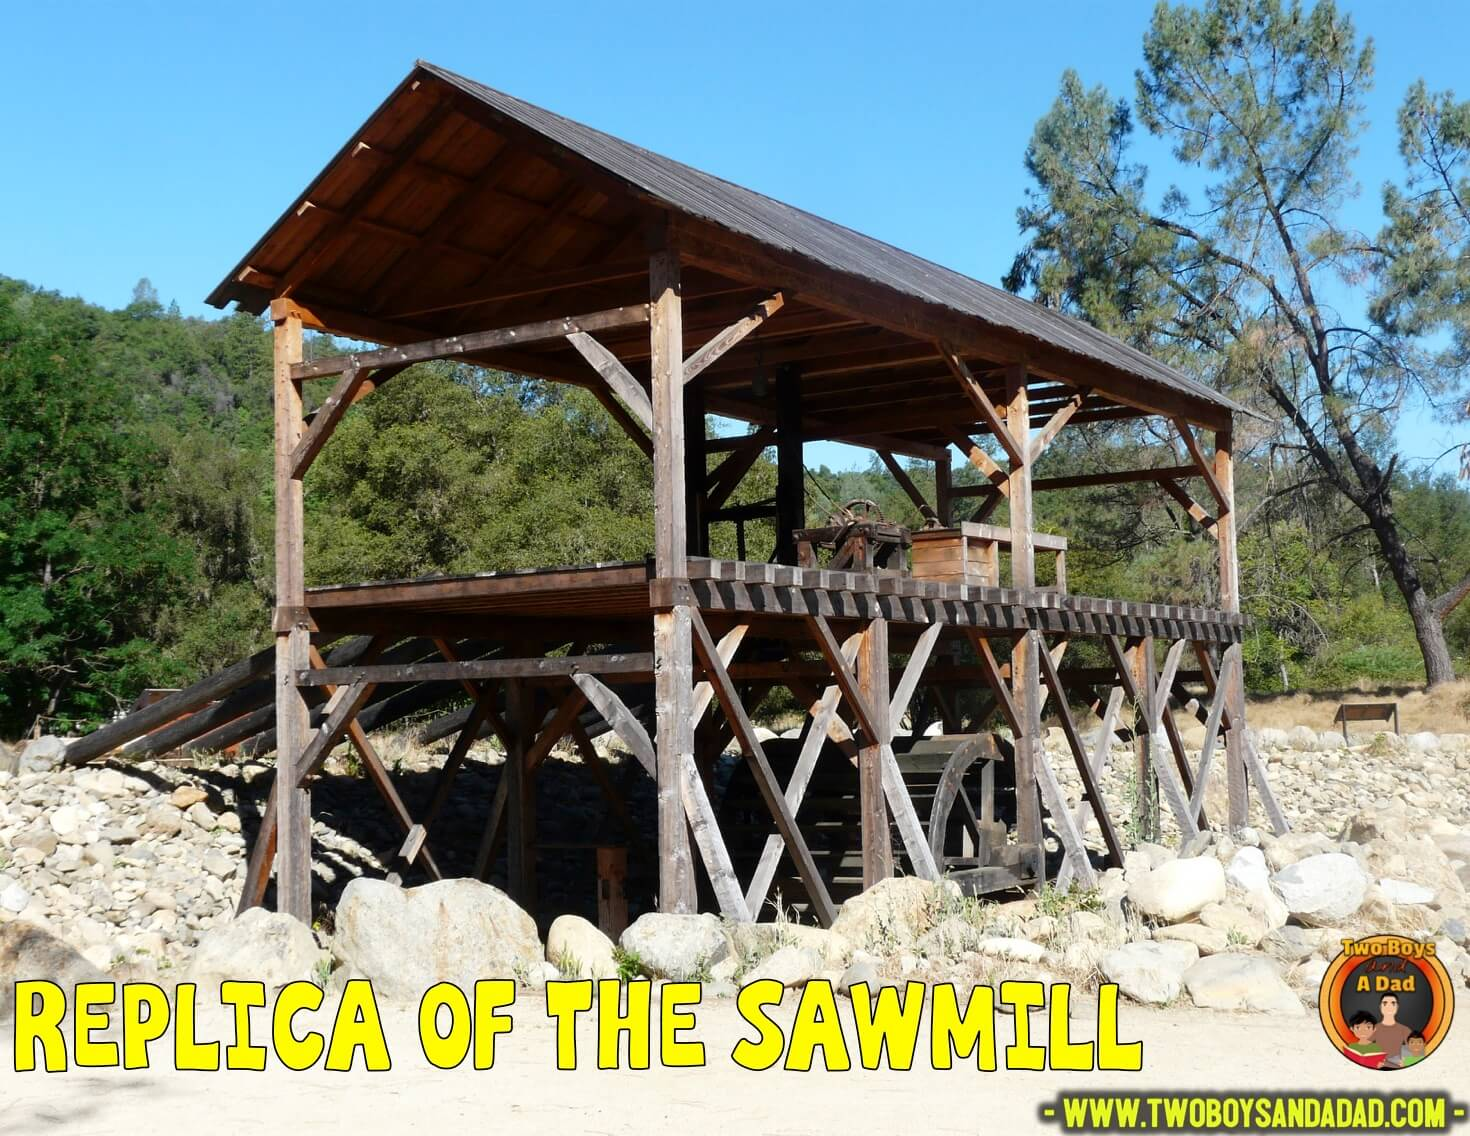 Replica of the sawmill